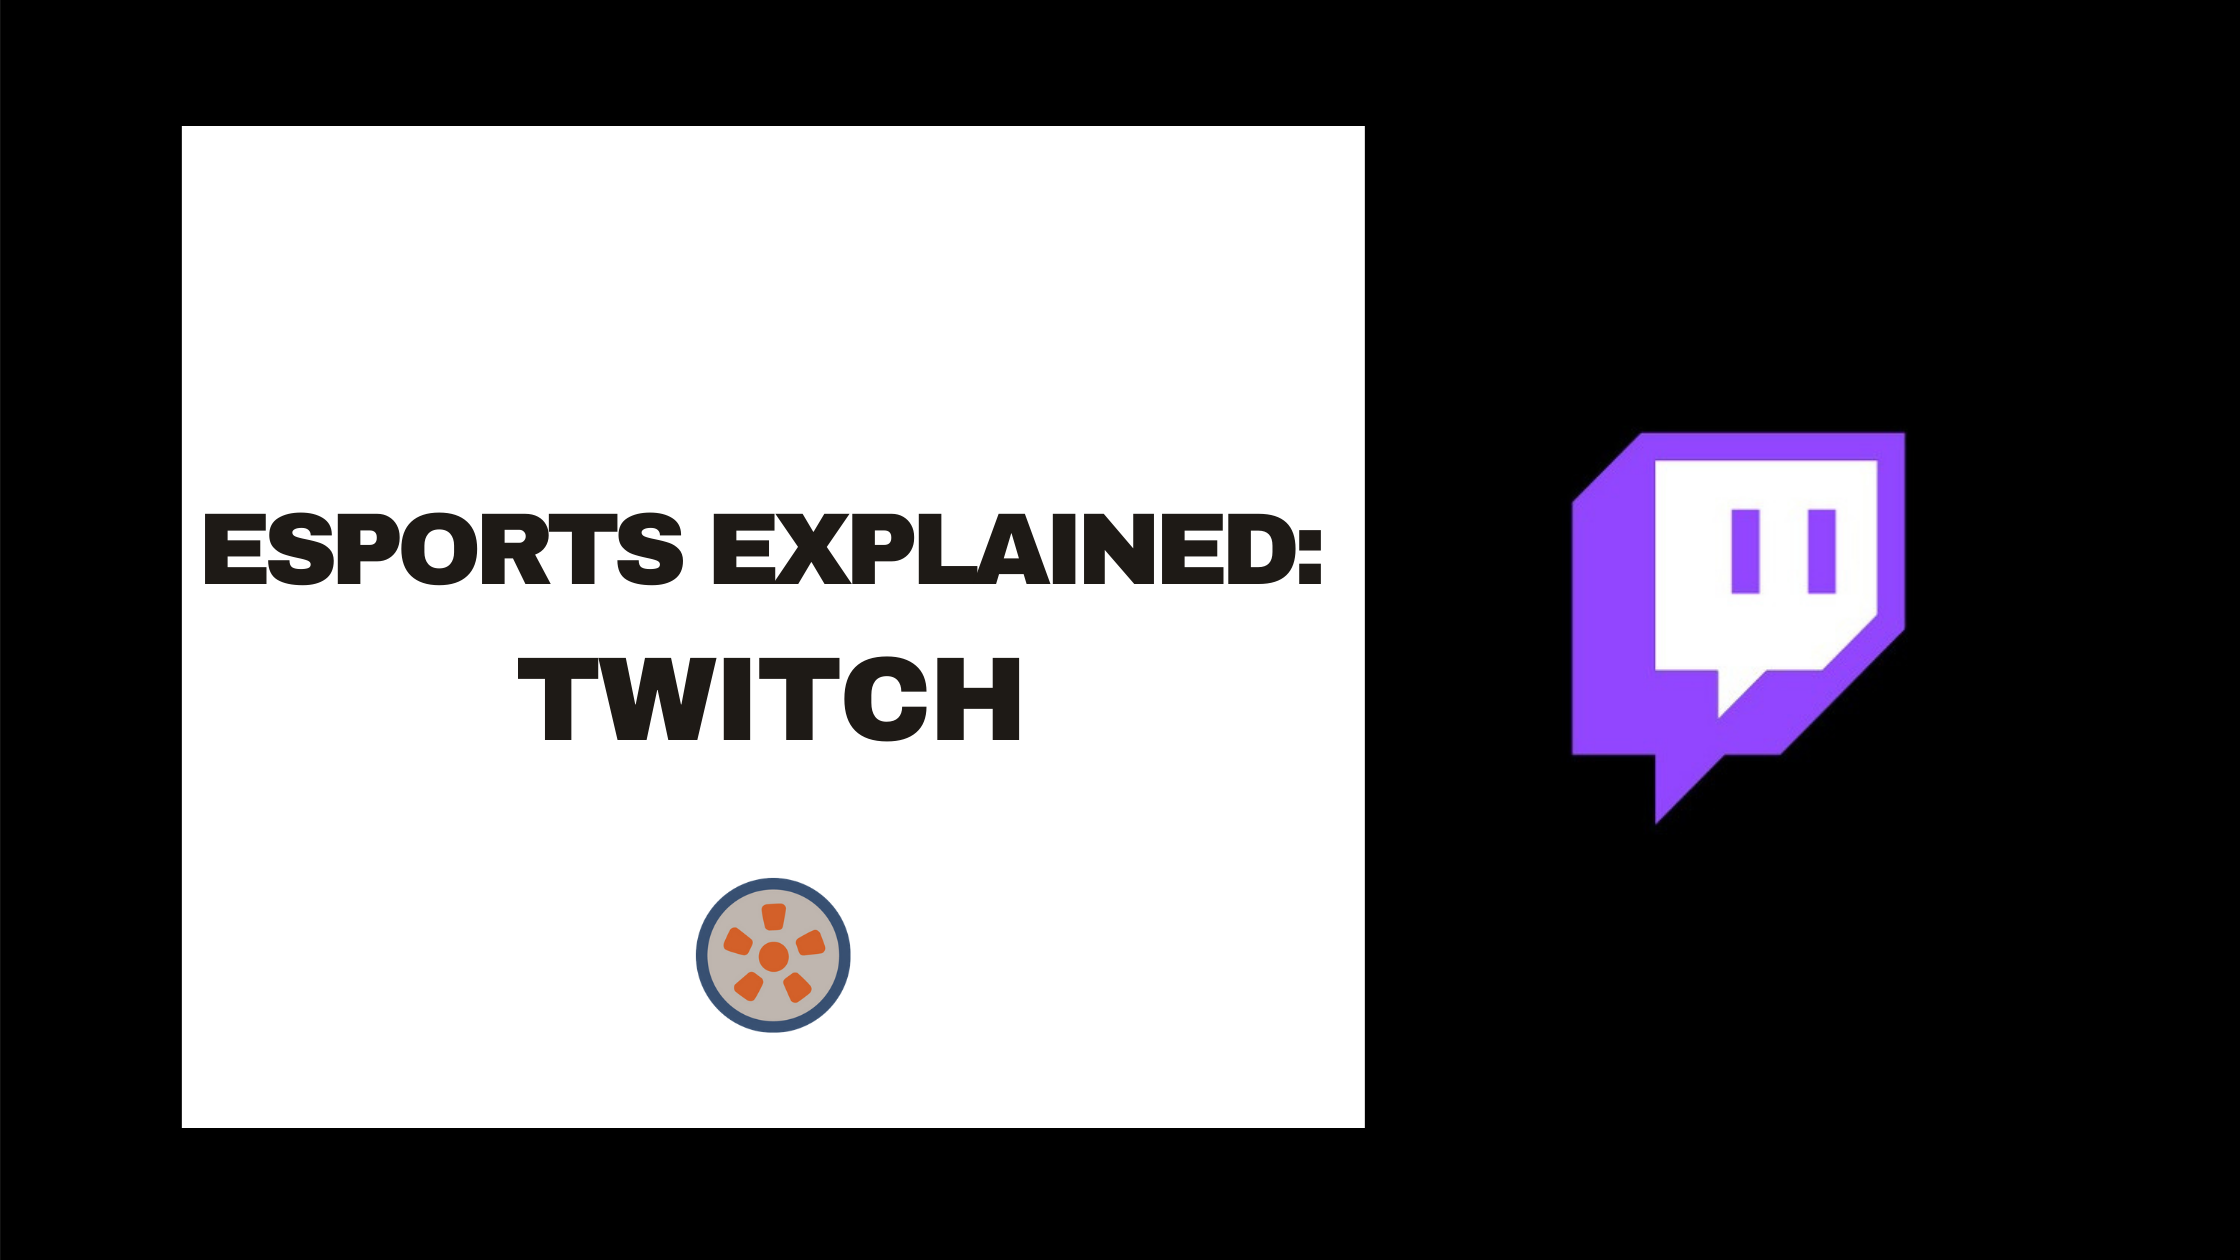 Esports Explained: Twitch